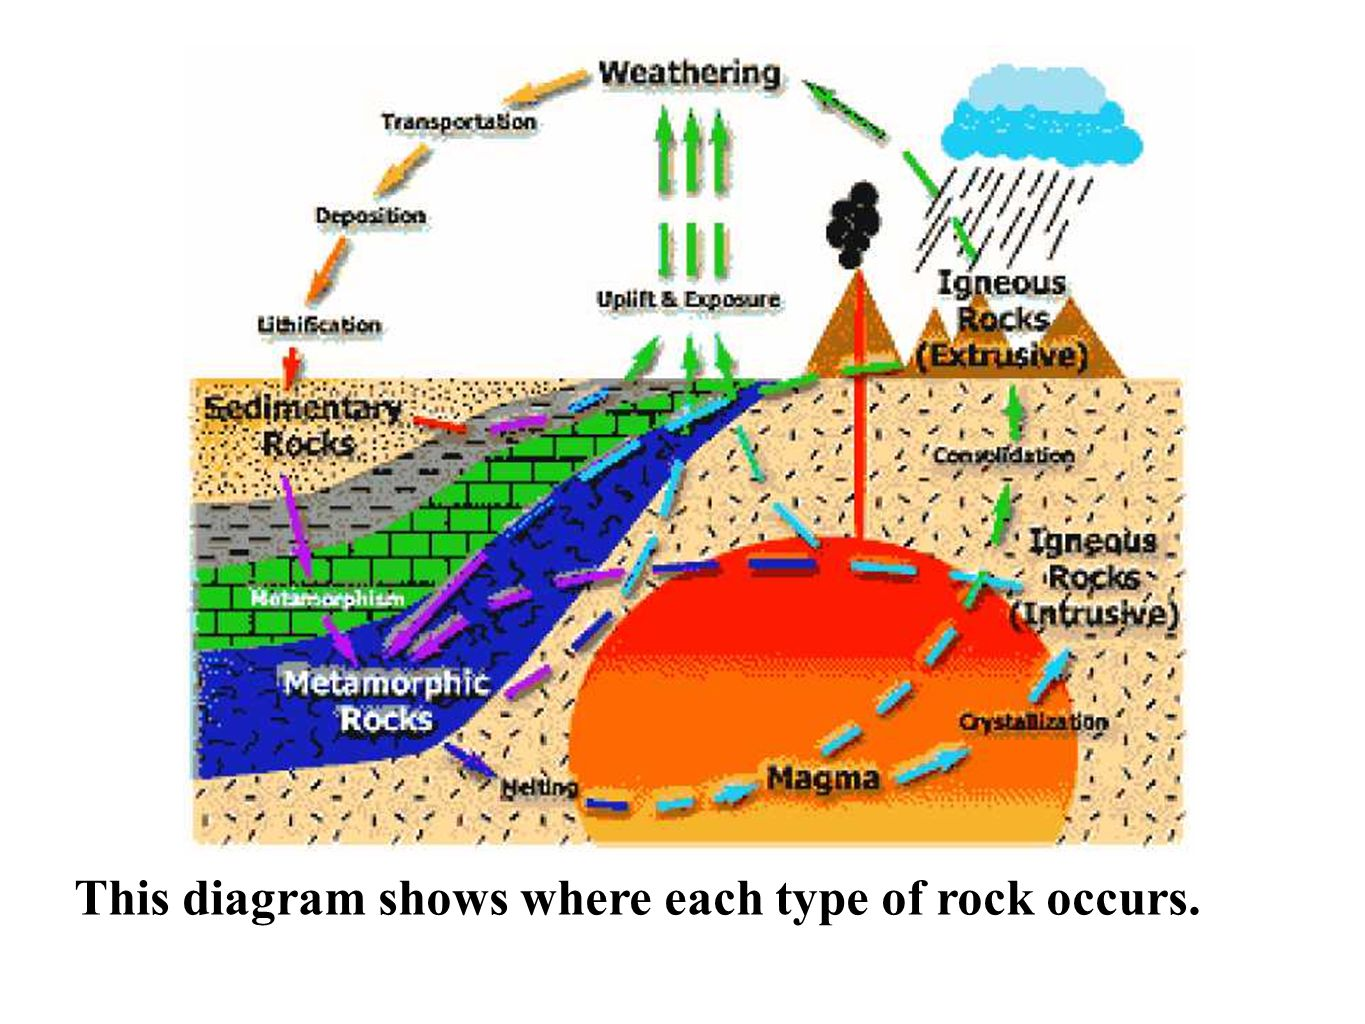 This diagram shows where each type of rock occurs.